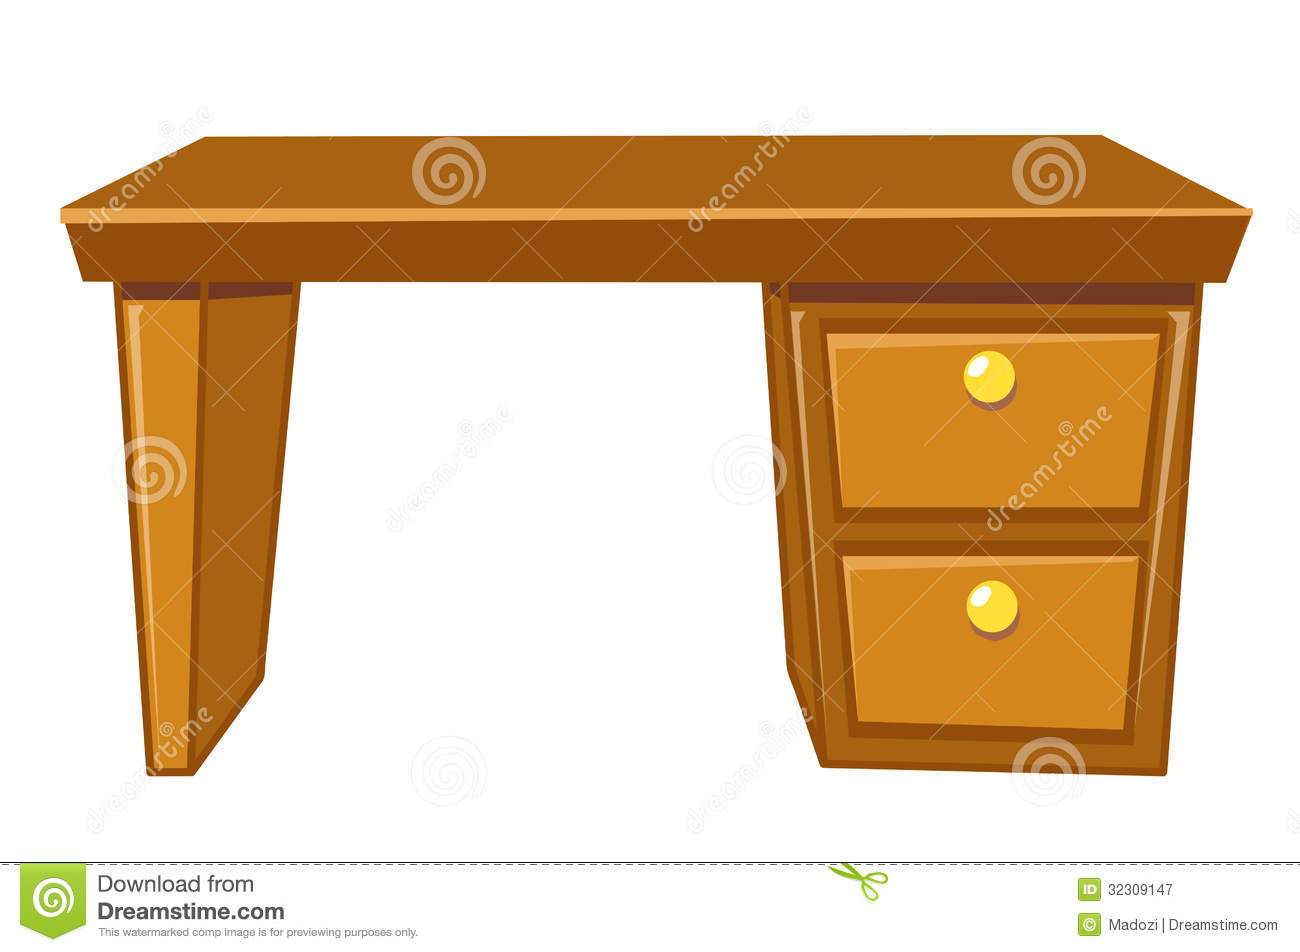 Cartoon desk clipart 20 free Cliparts  Download images on